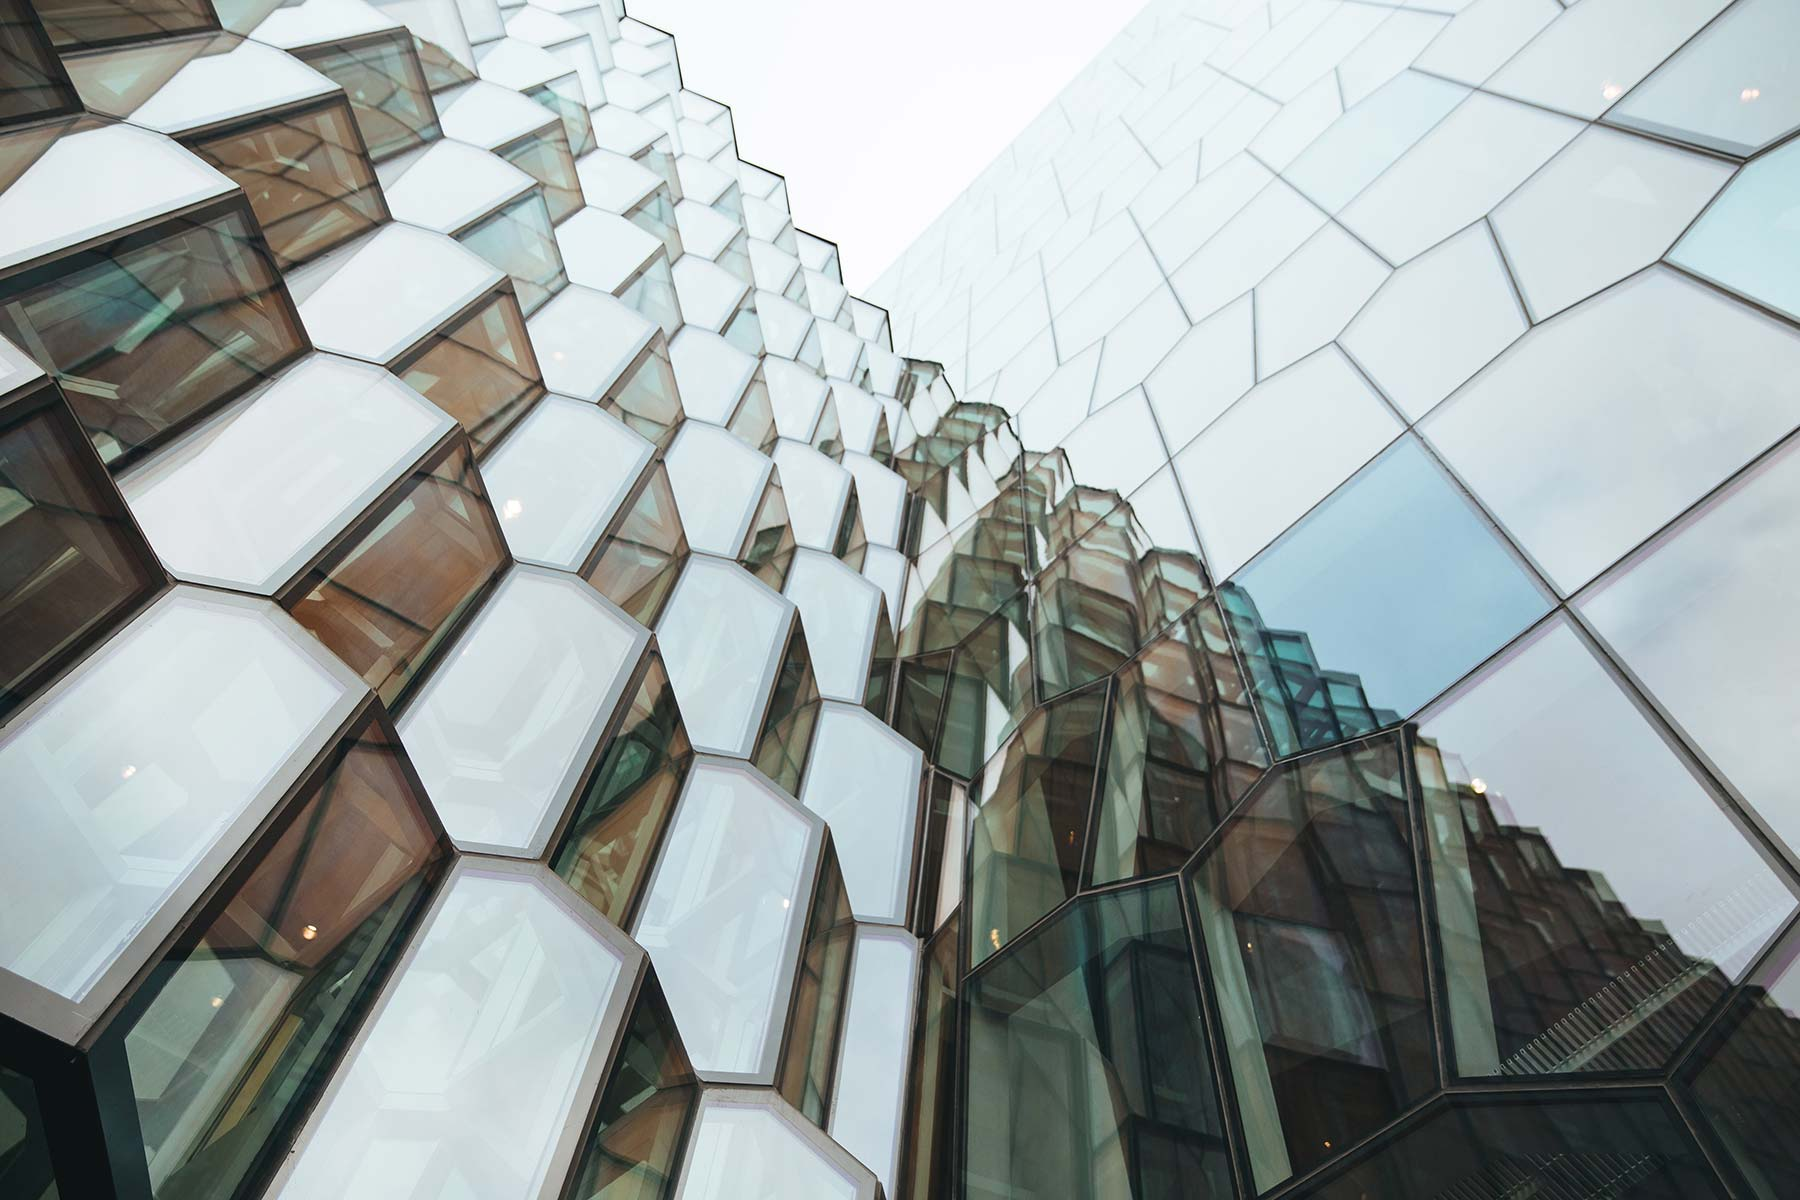 Modern glass architecture pierces the sky.